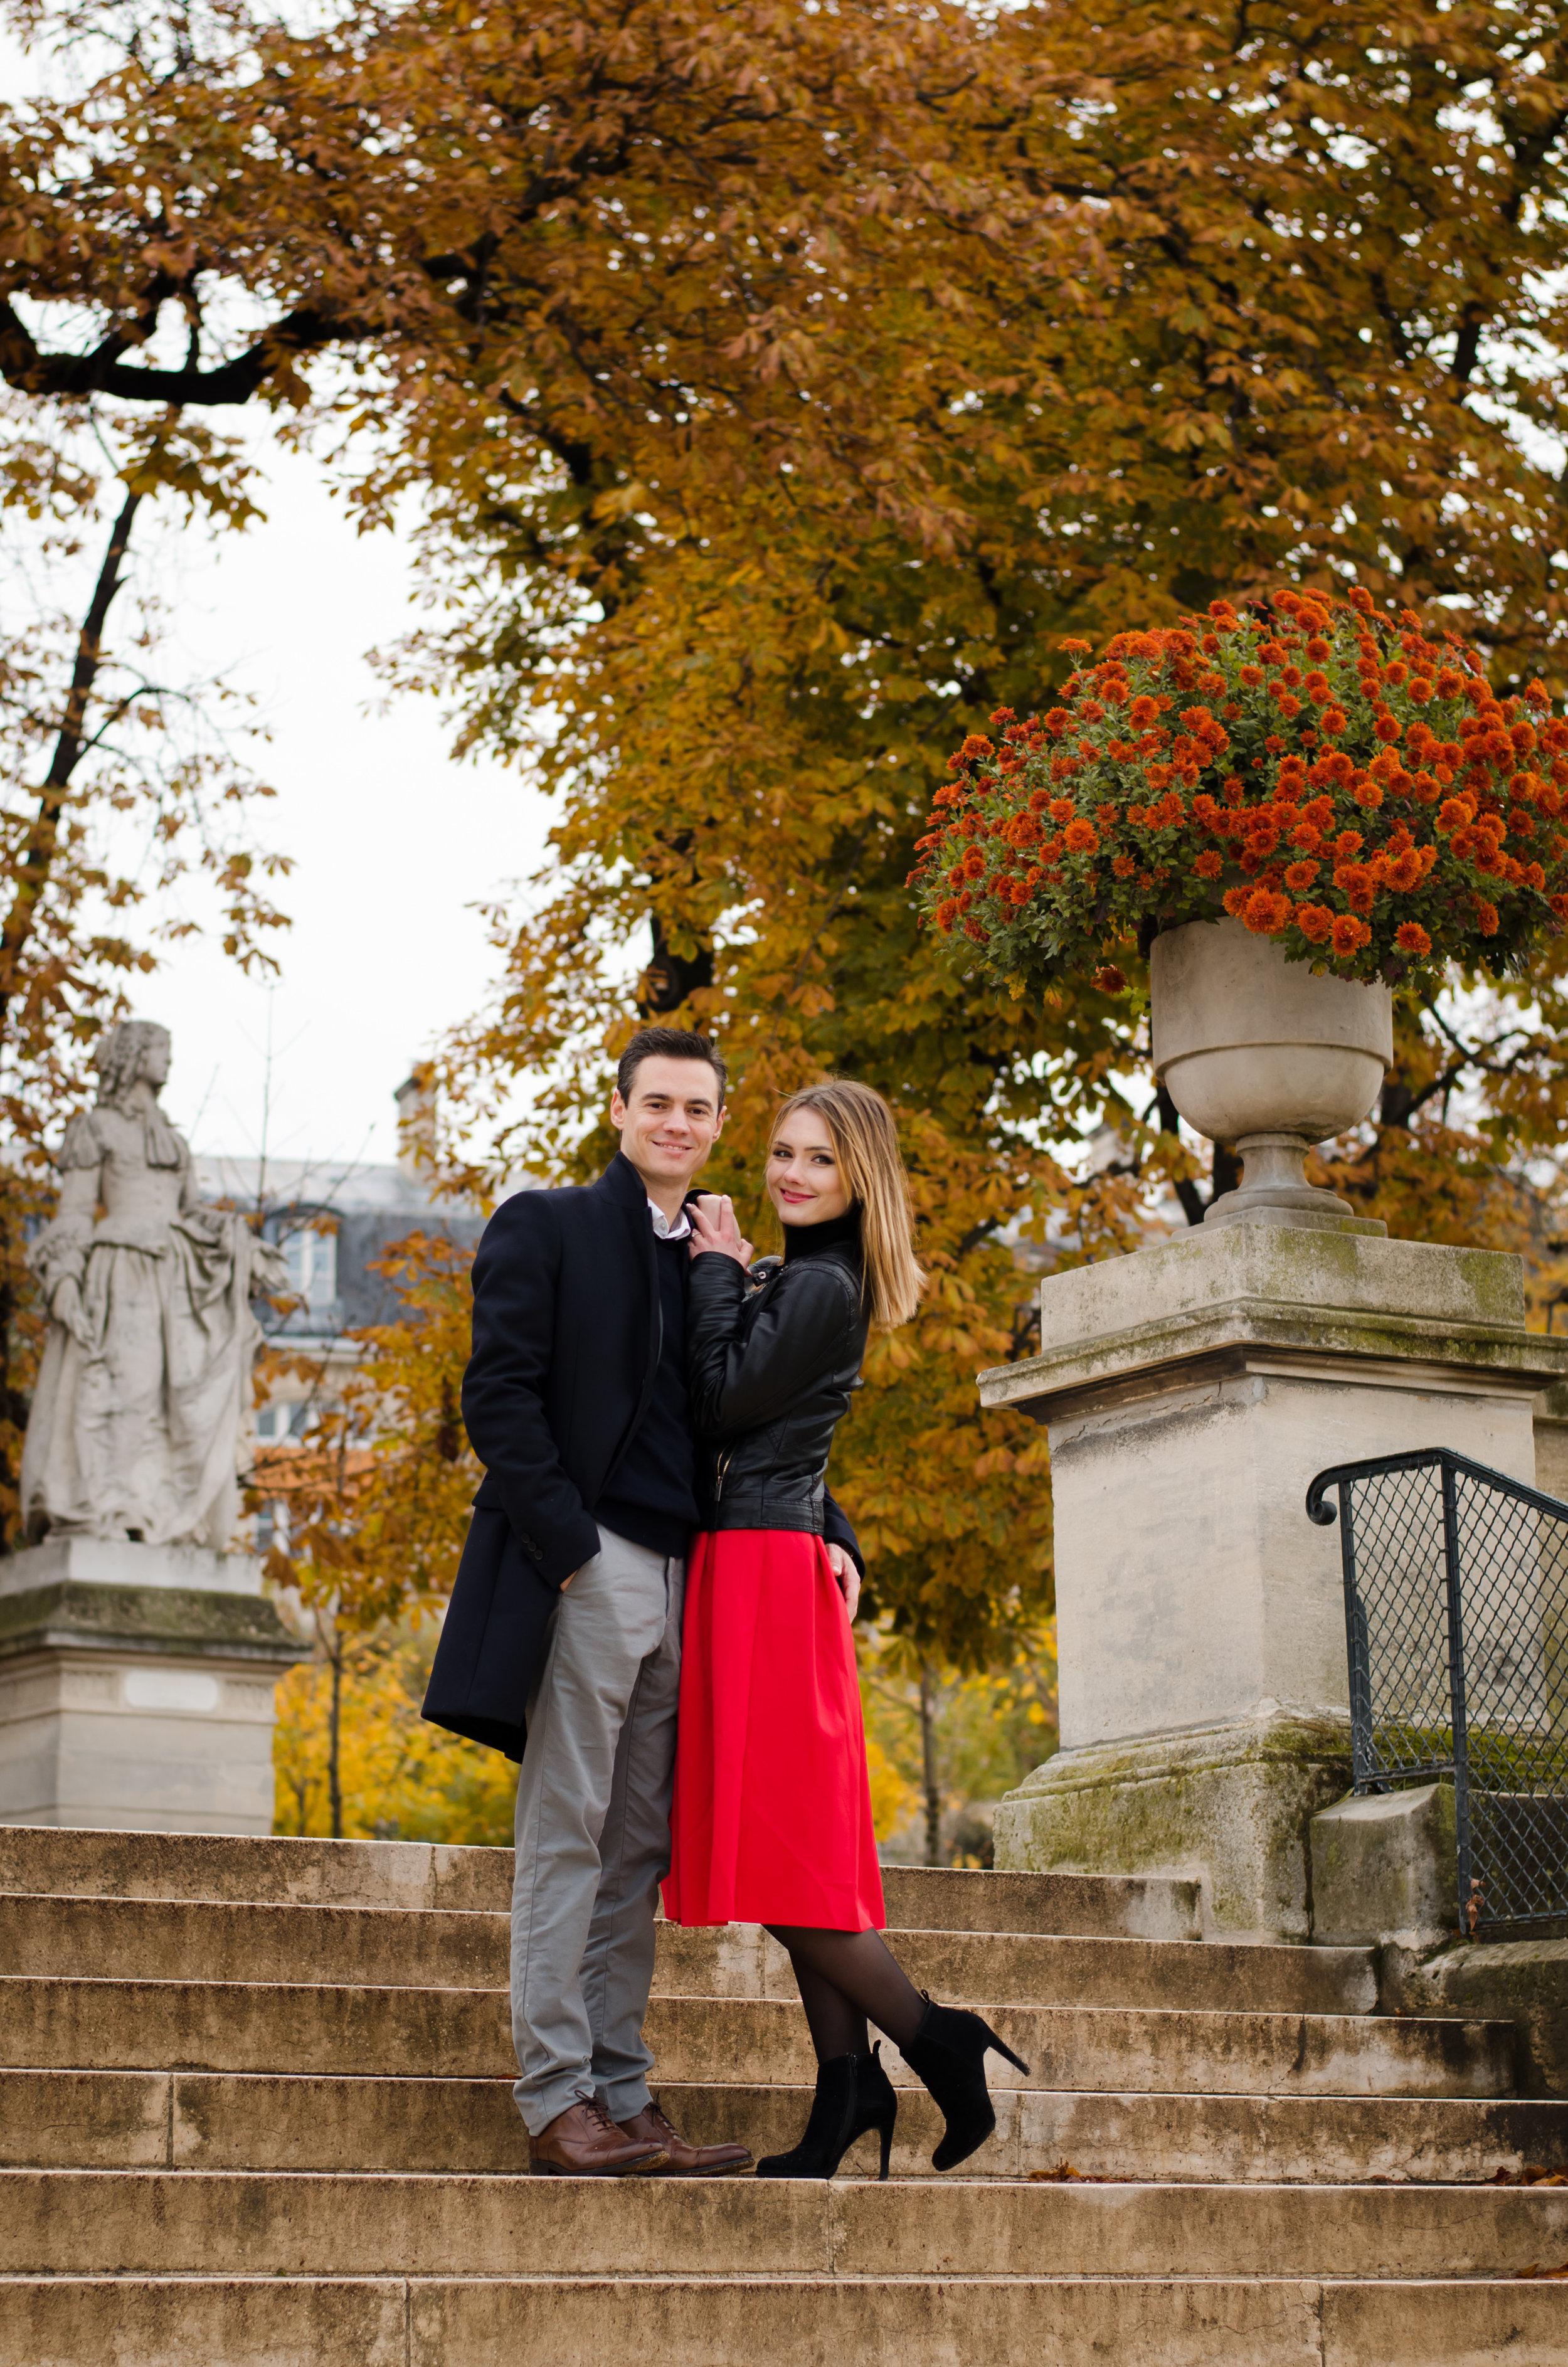 Paris engagement photoshoot in the fall Kat & Ed 5 Nov 2016-99.jpg